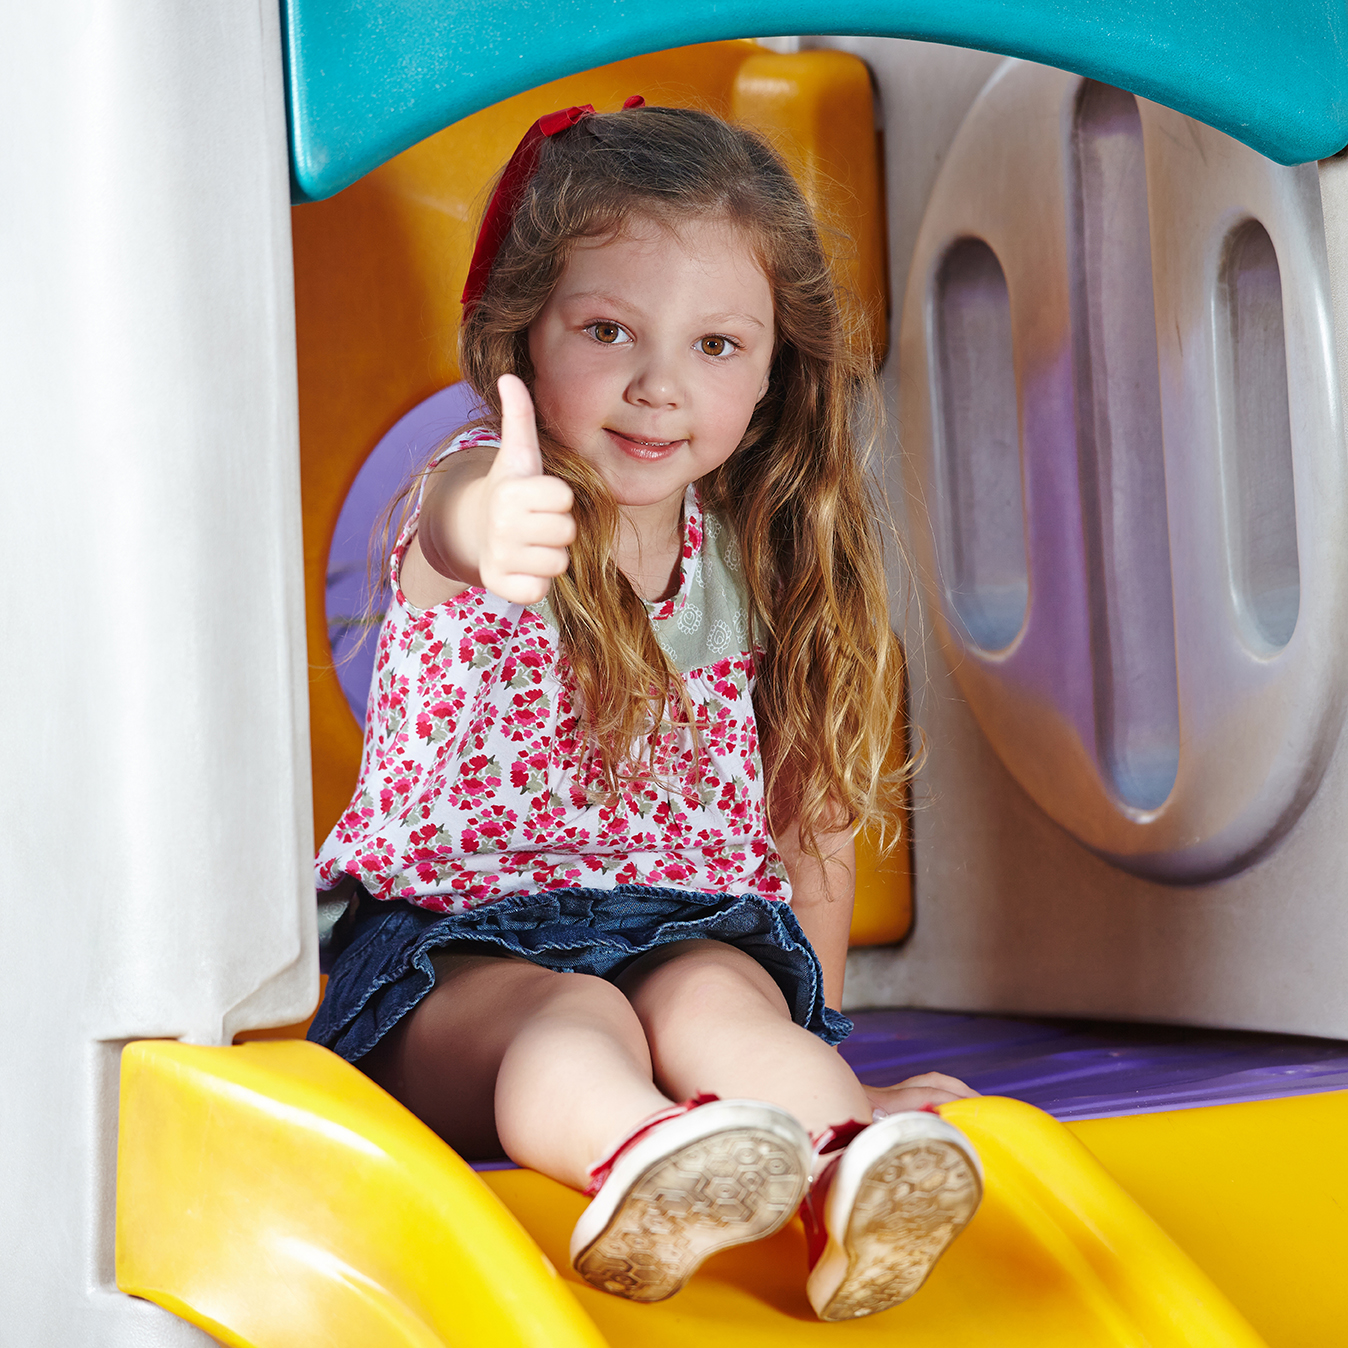 little girl with thumbs up on slide